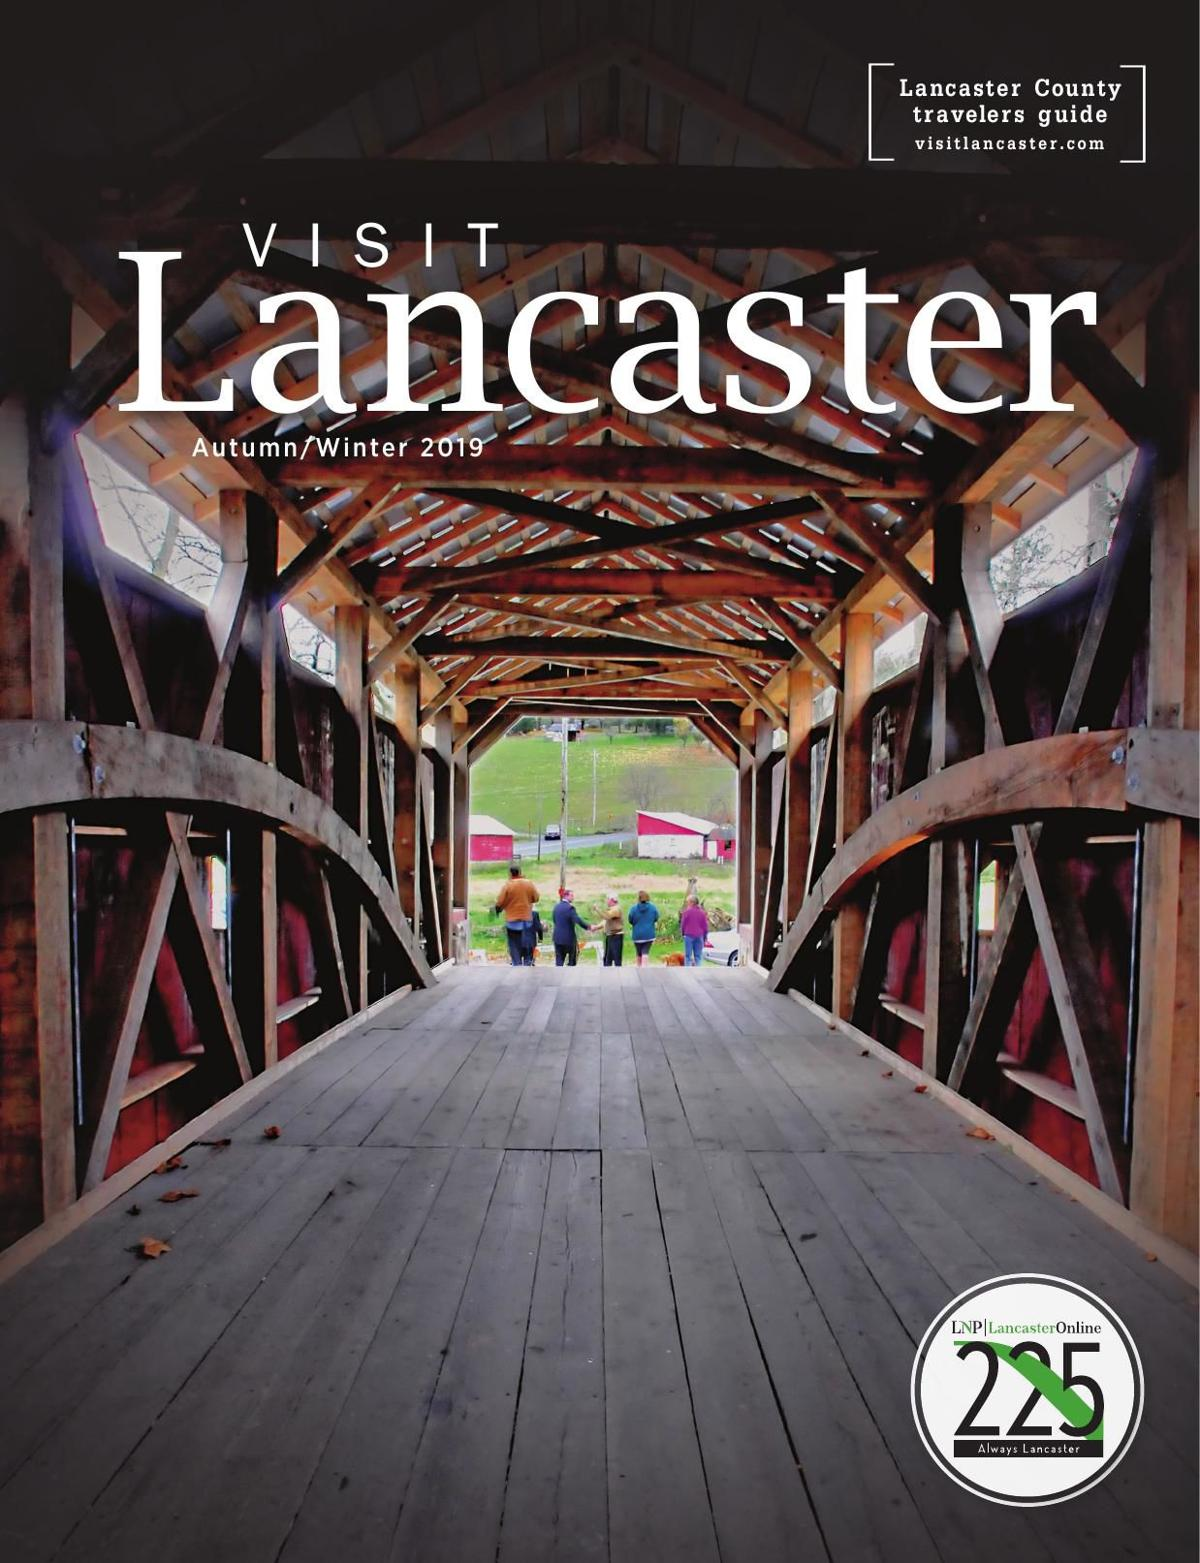 Visit Lancaster Autumn/Winter 2019